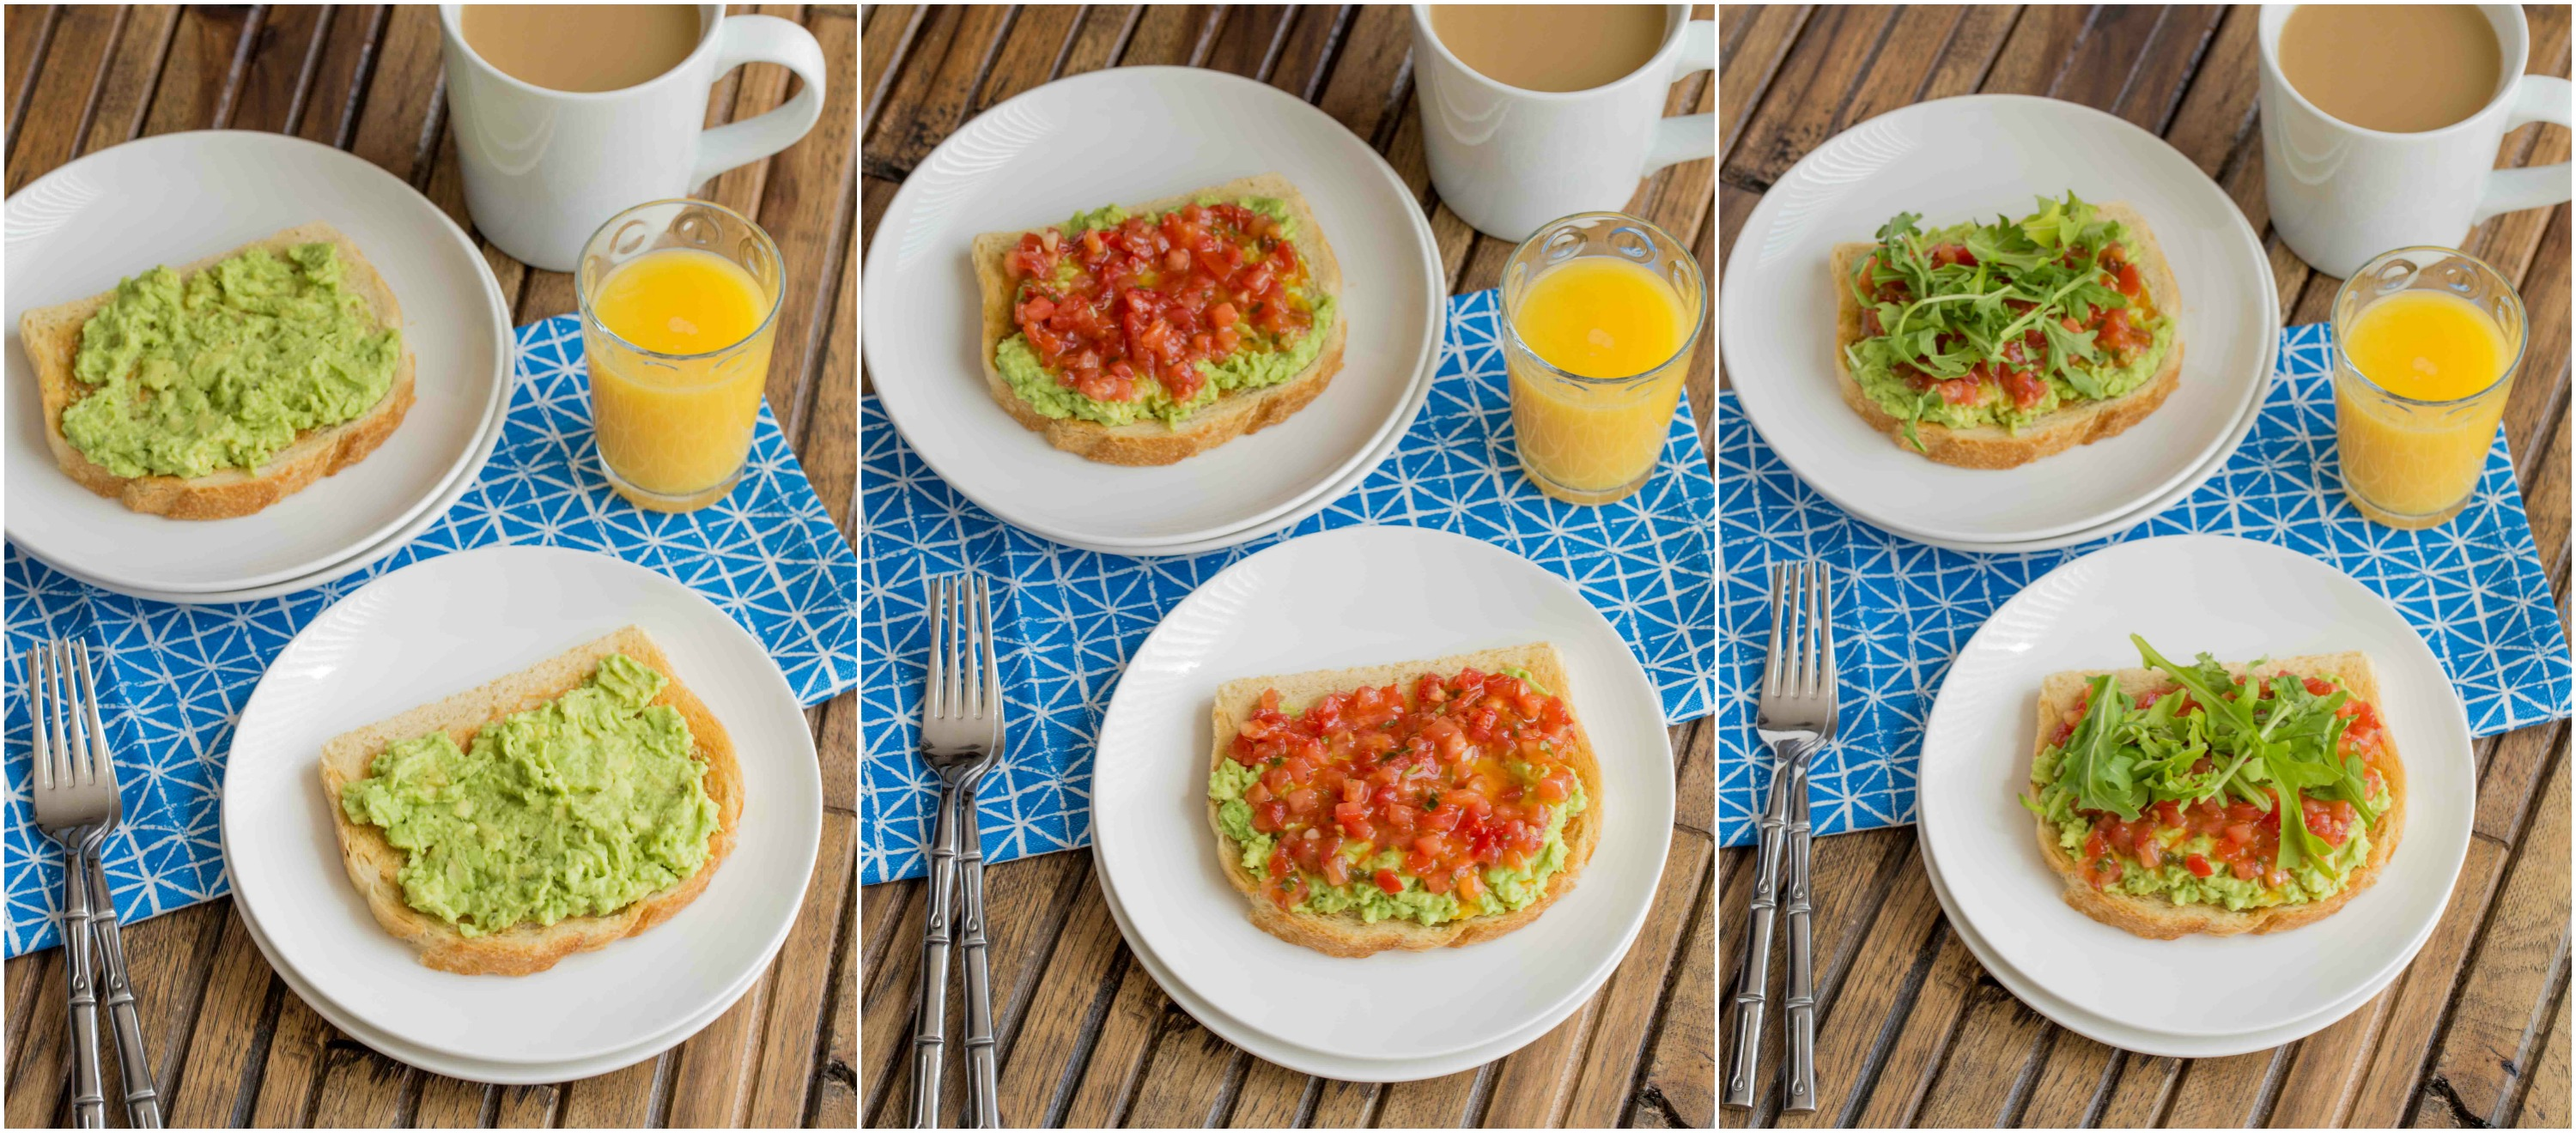 Bruschetta Egg Avocado Toast ~ mykitchencraze.com ~ Sourdough toast loaded with avocado, bruschetta and arugula, then topped with an egg. Perfect way to start your morning!